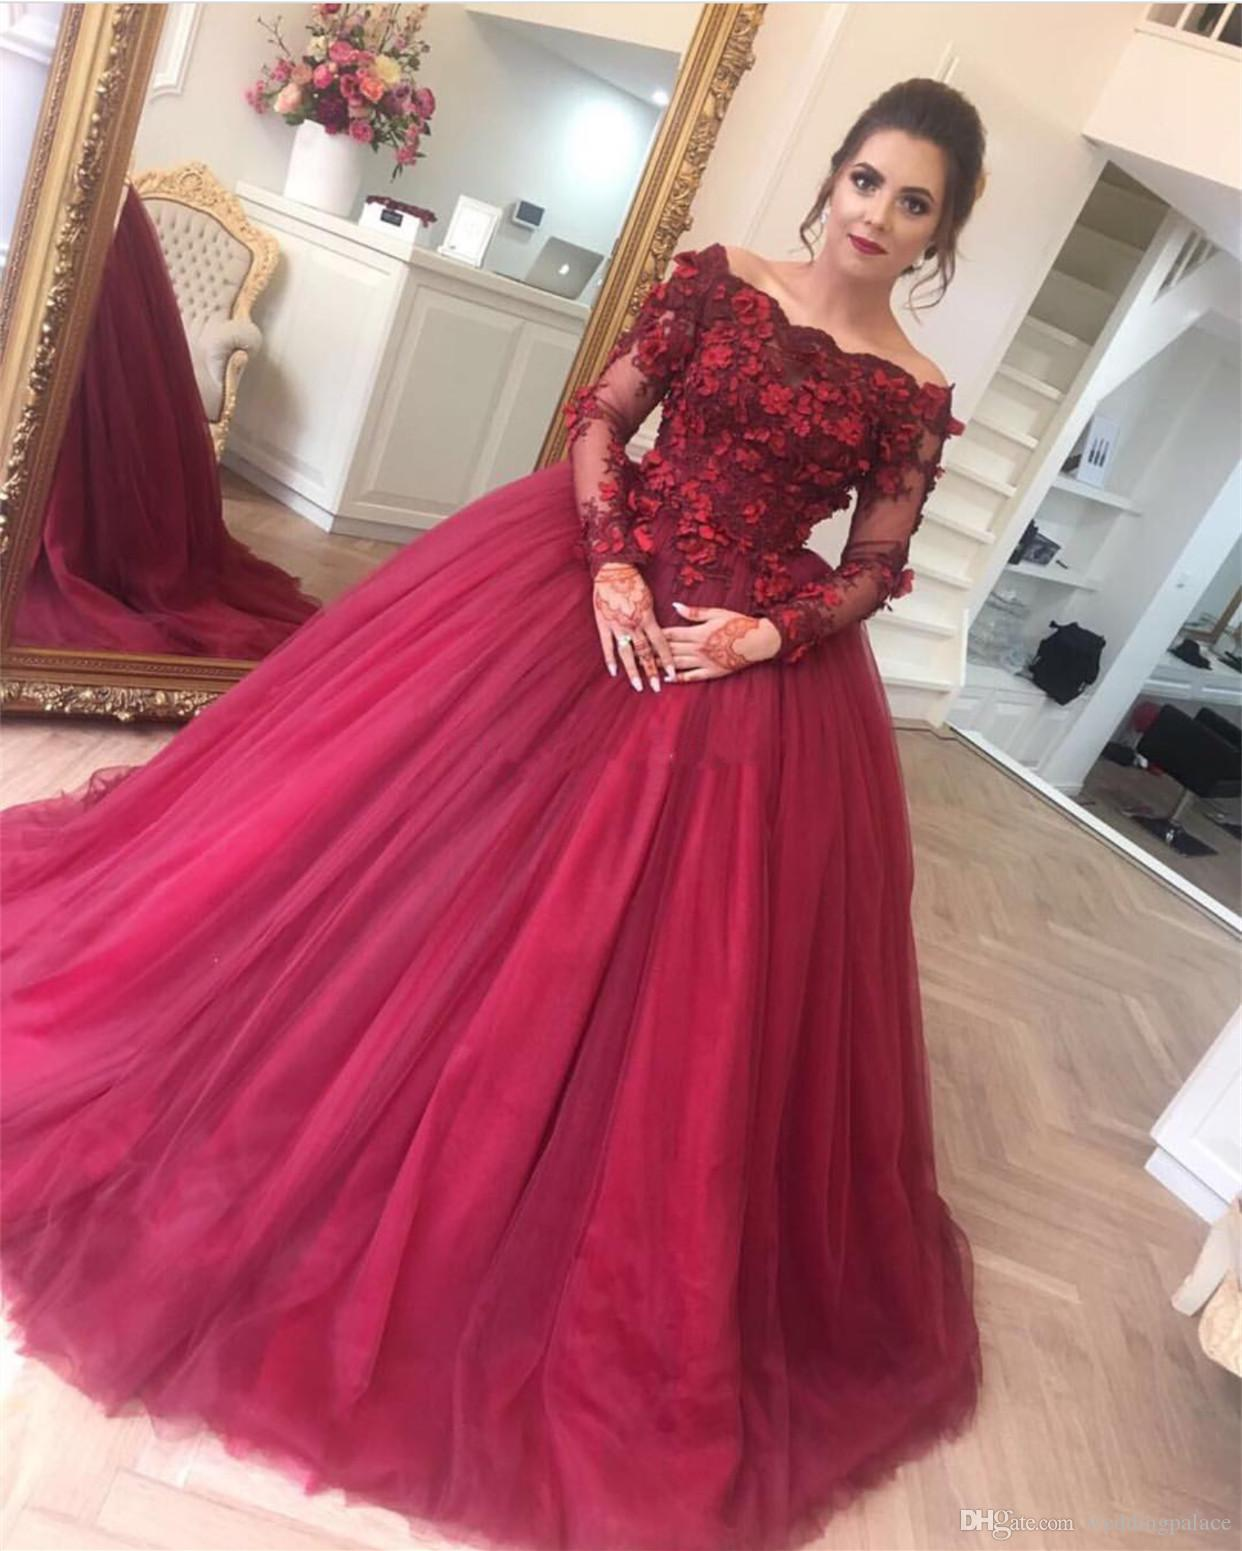 01f7fa7f79f69 Luxurious Long Sleeve Ball Gown Quinceanera Dresses Wine Red Sweet 16 Lace  Up Back Tulle Prom Dresses Party Gowns Special Occasion Dresses Dresses For  Women ...